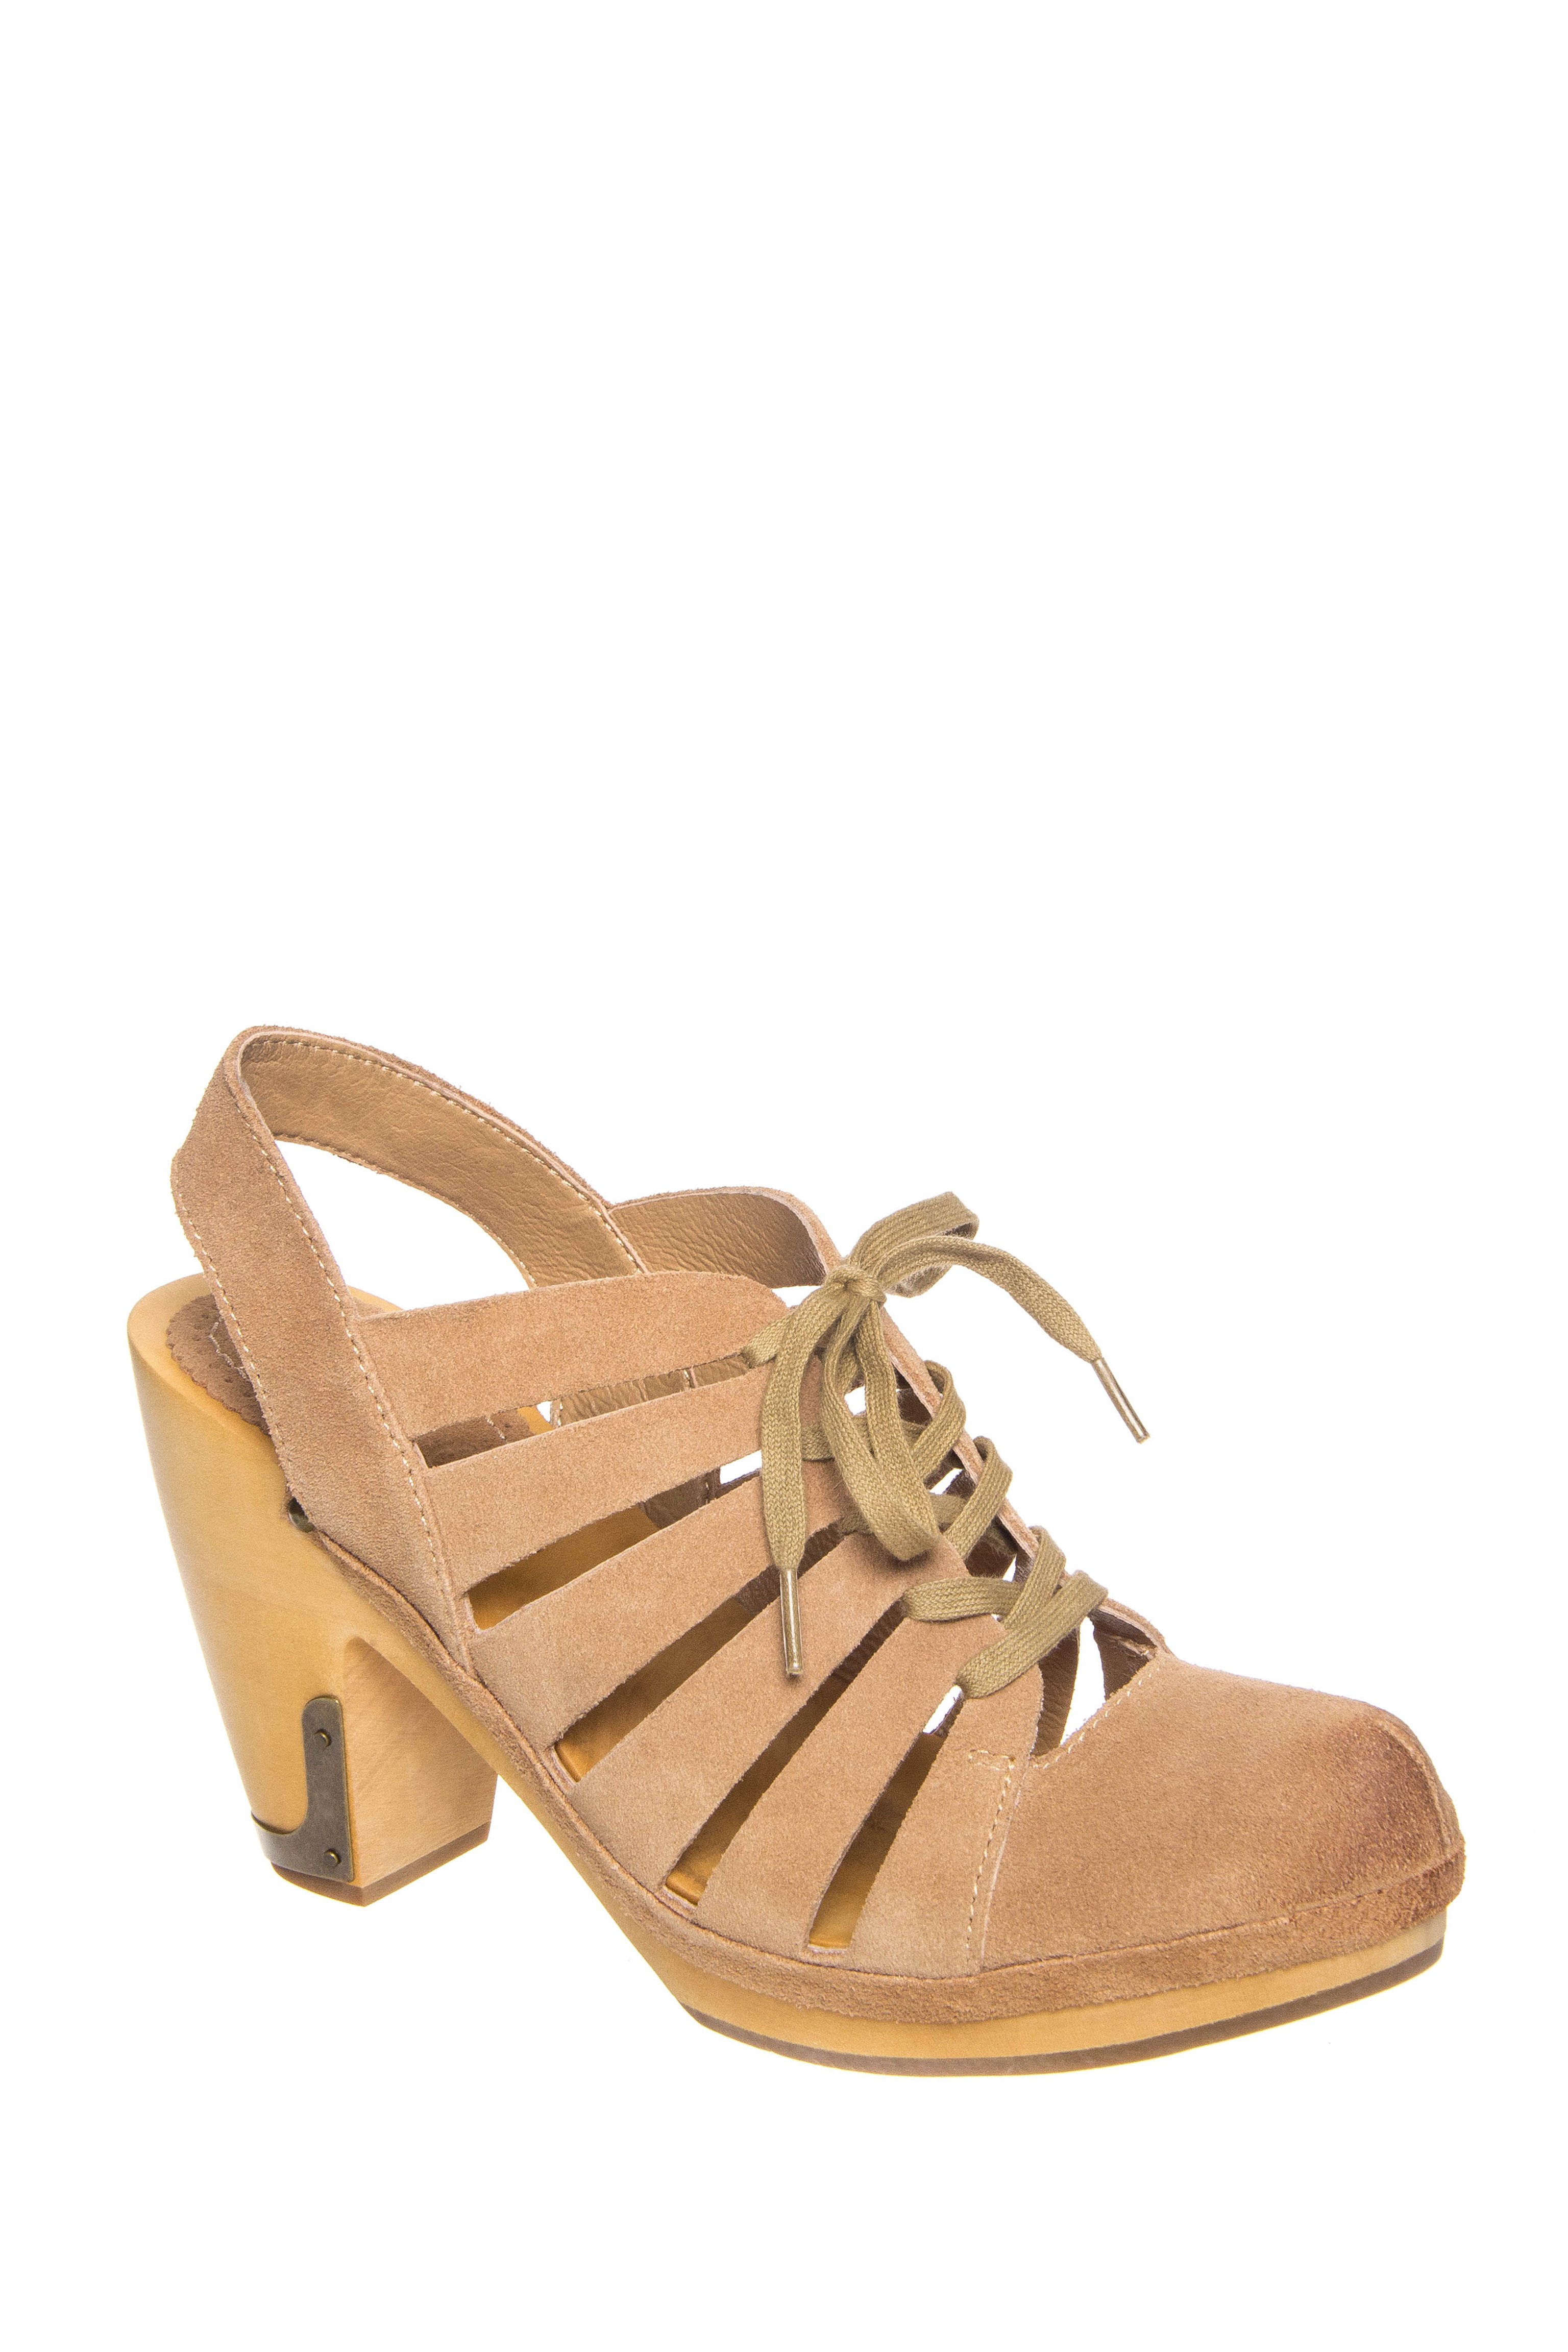 Latigo Cali Mid Heel Sandals - Straw